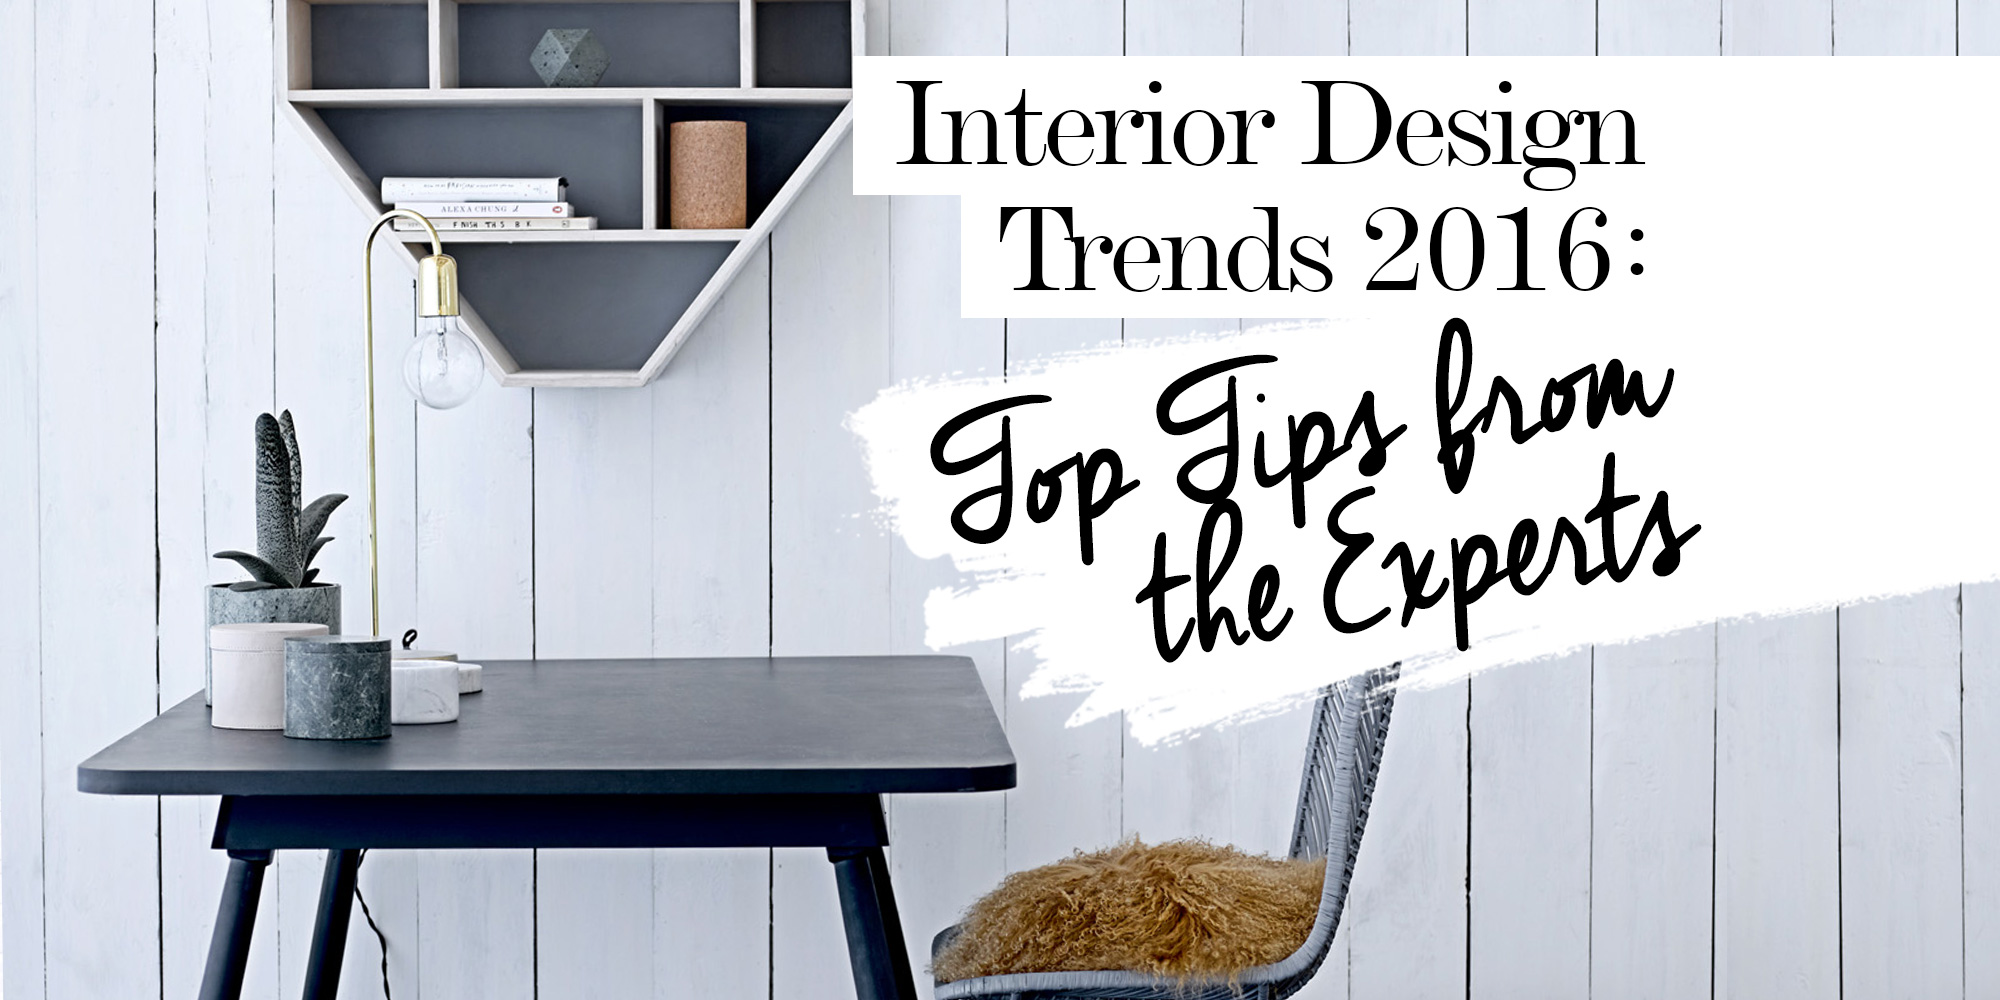 2016 Interior Design Trends: Top Tips From the Experts - The LuxPad ...